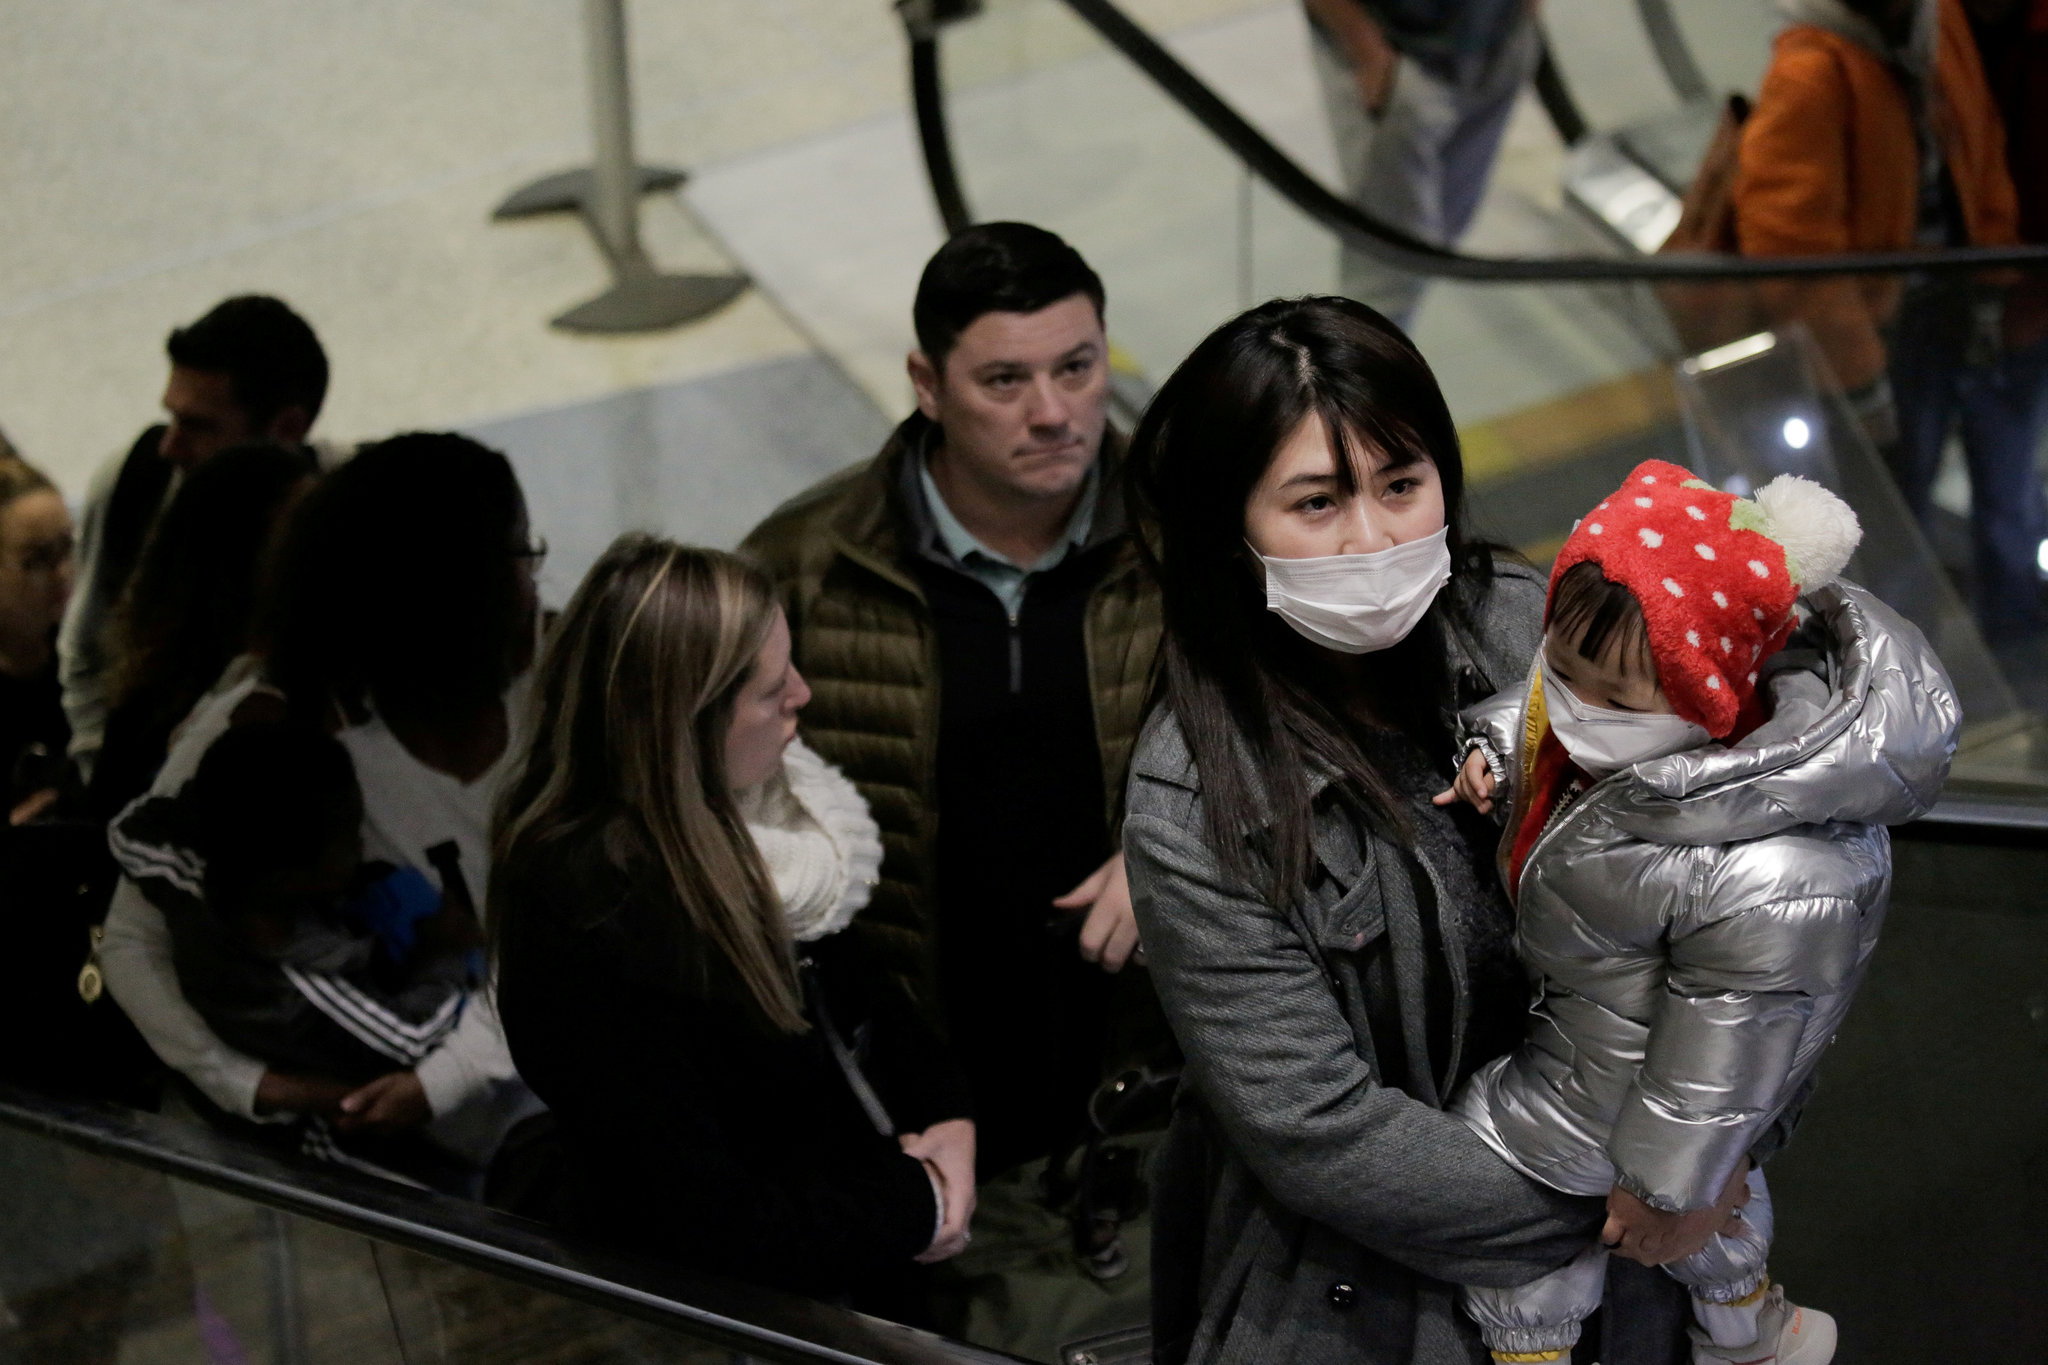 Texas Student May Have Wuhan Coronavirus, as Dozens in U.S. Are ...